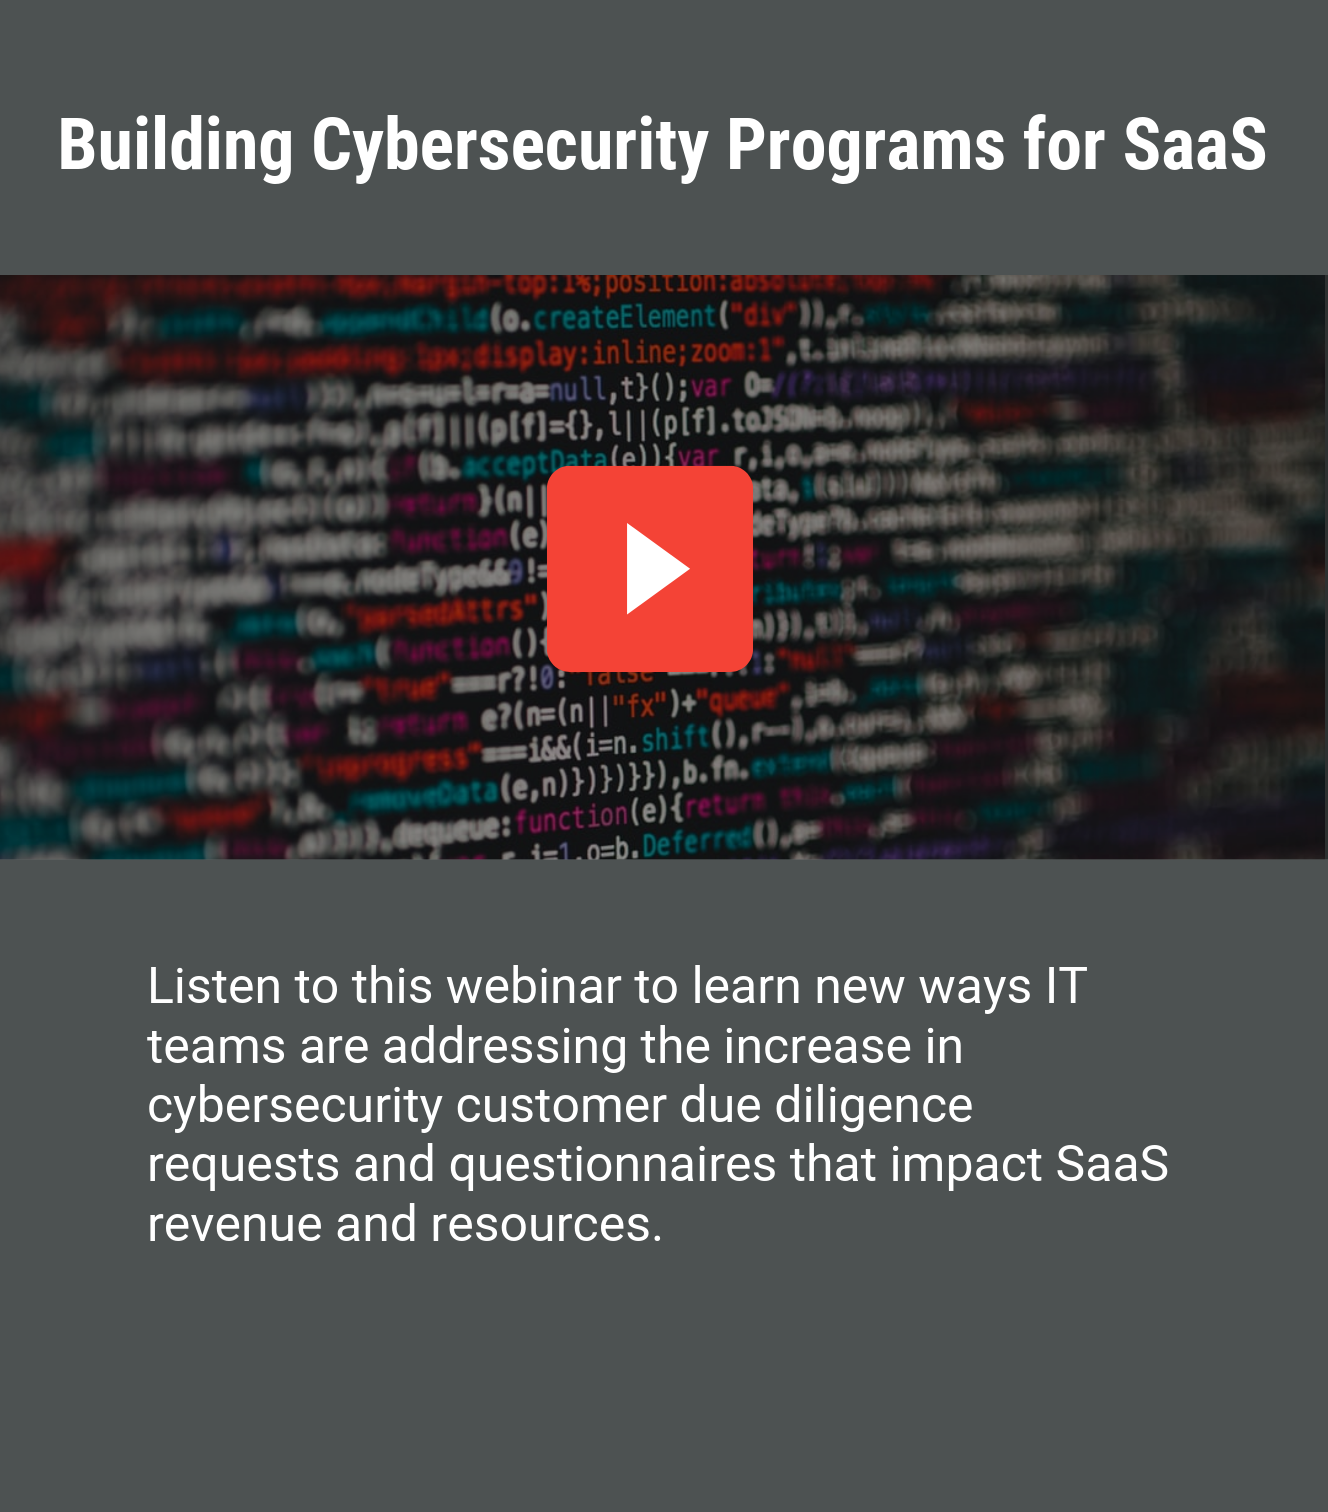 Building cybersecurity programs for SaaS